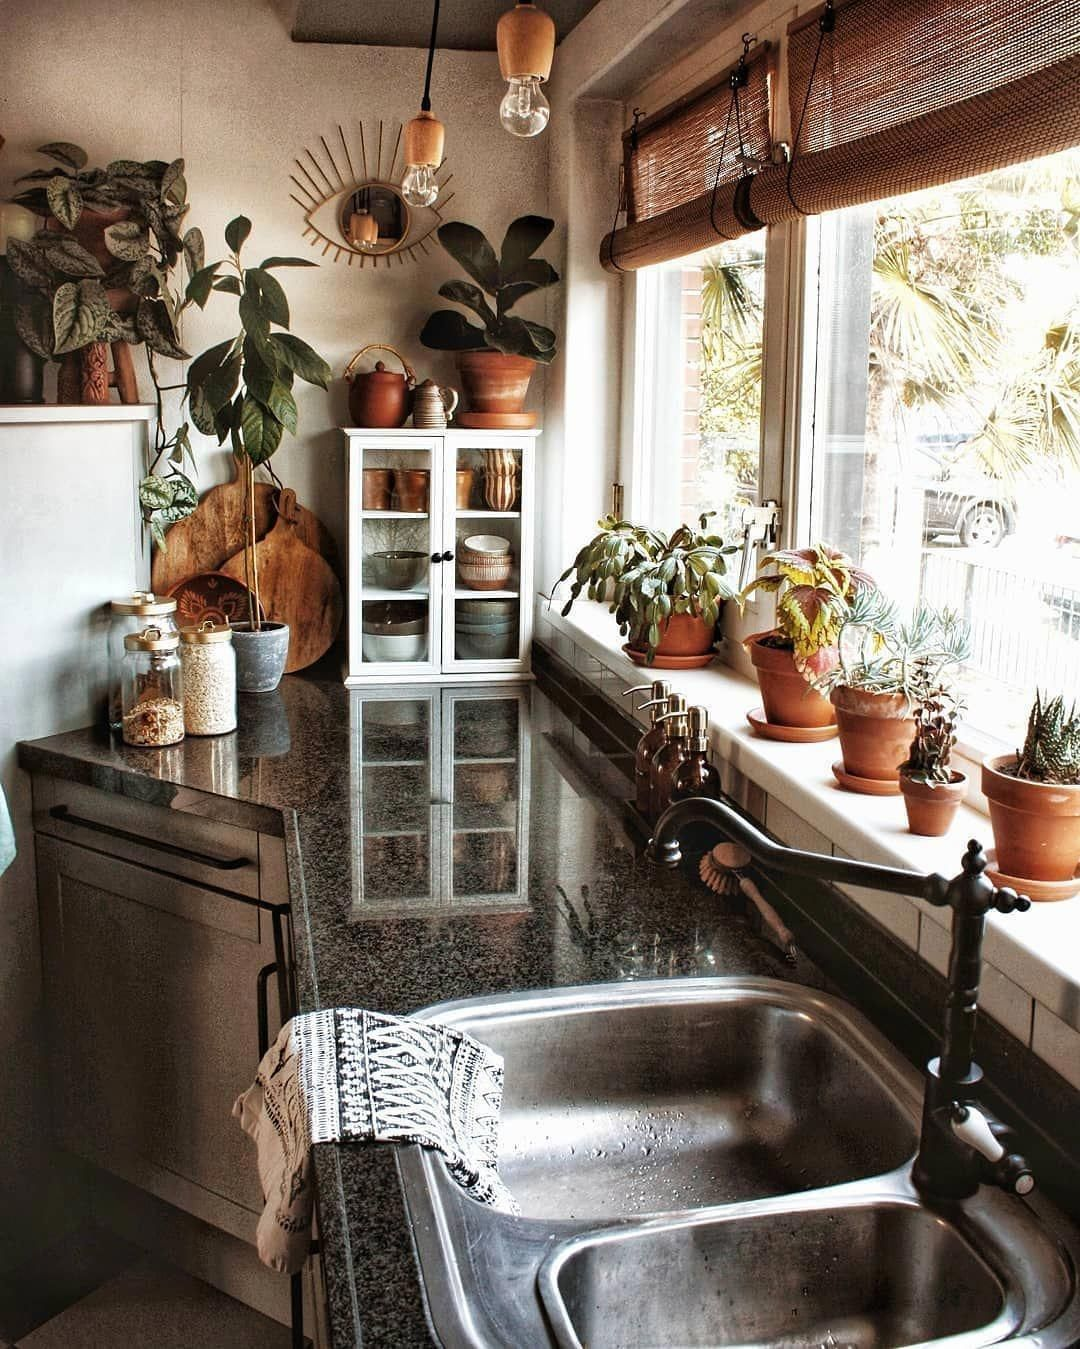 32 brilliant over the toilet storage ideas that make the most of your space earthy home decor on kitchen decor hippie id=83769